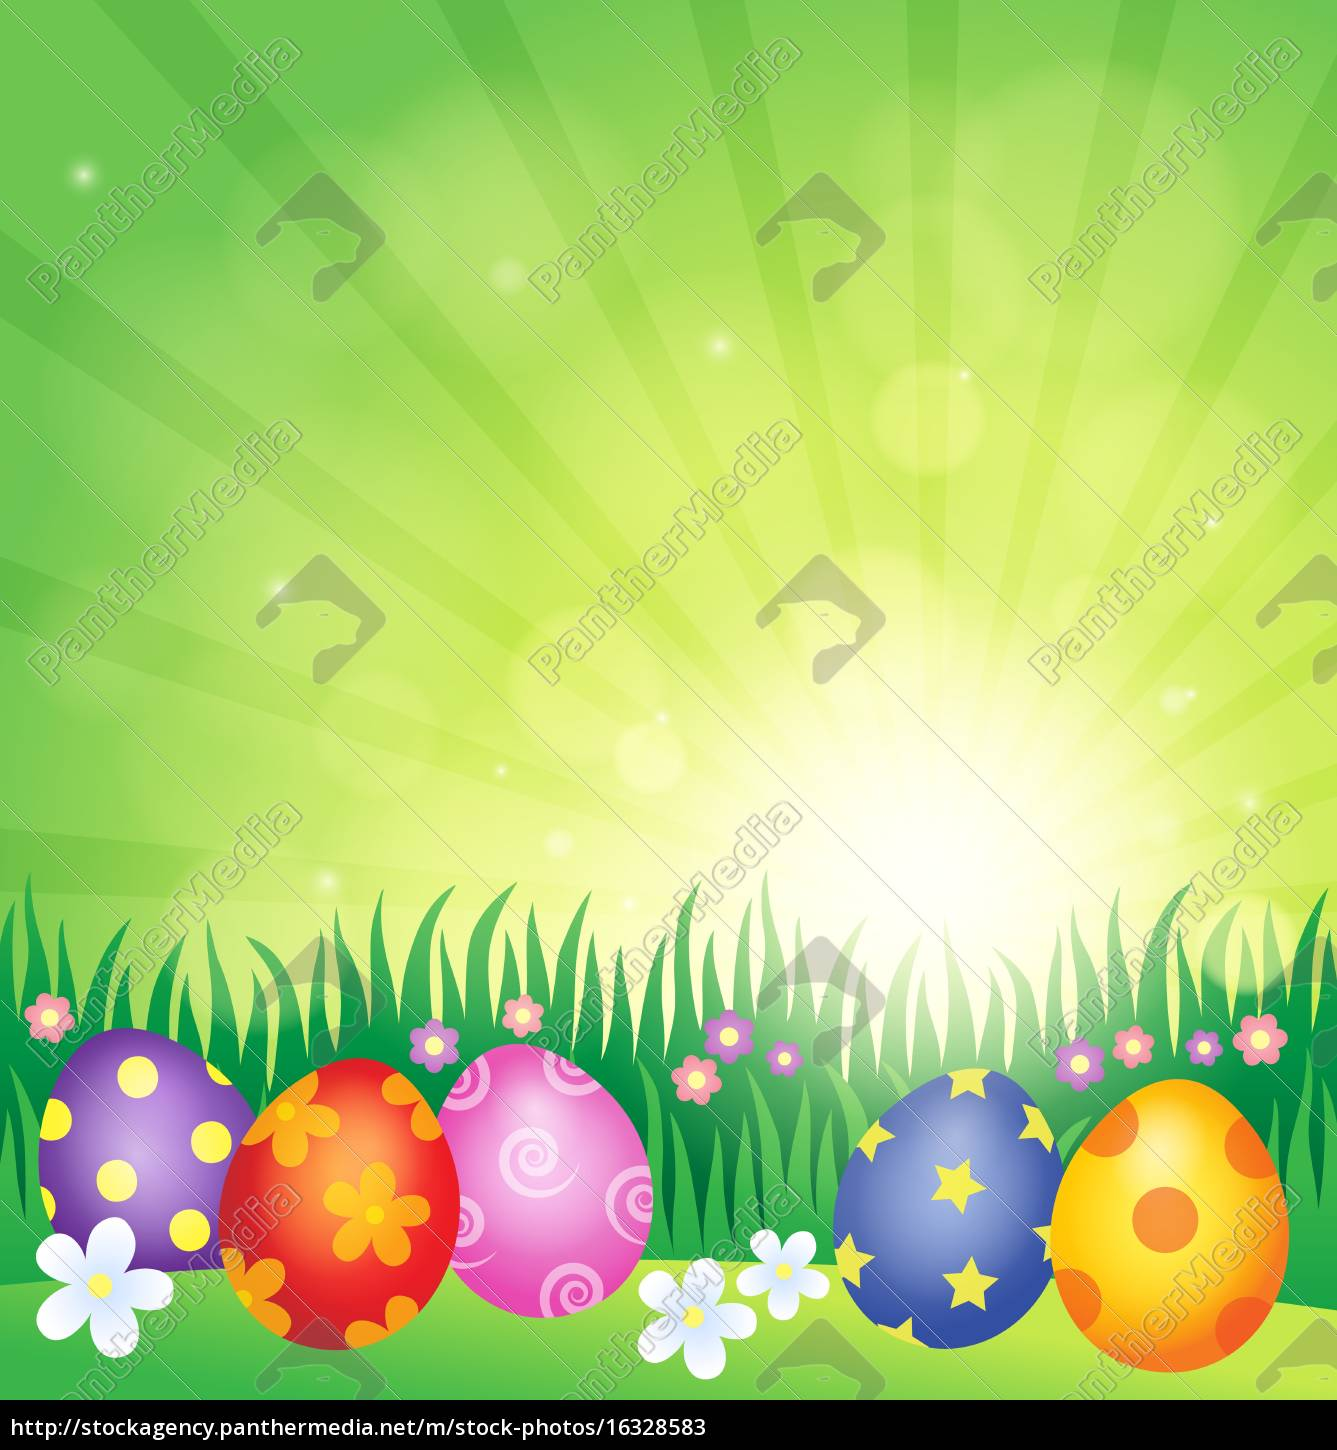 decorated, easter, eggs, theme, image, 4 - 16328583